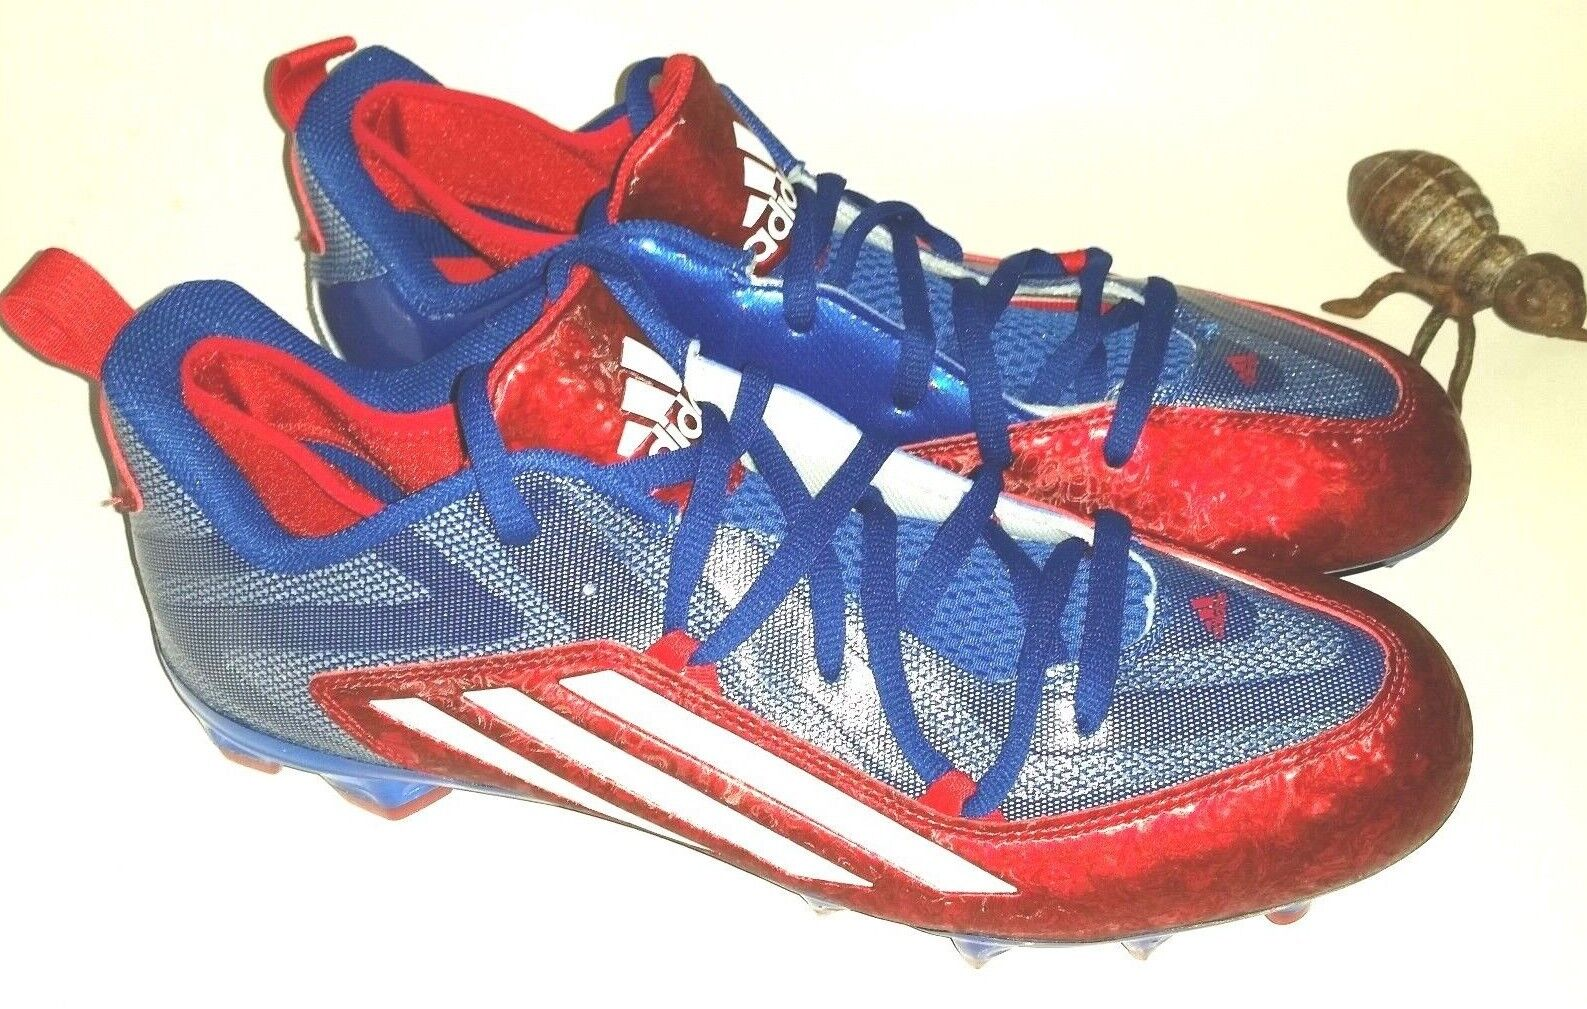 Adidas Crazyquick 2.0L American Football Cleats Men's 13.5 Patriotic USA Red NEW Brand discount